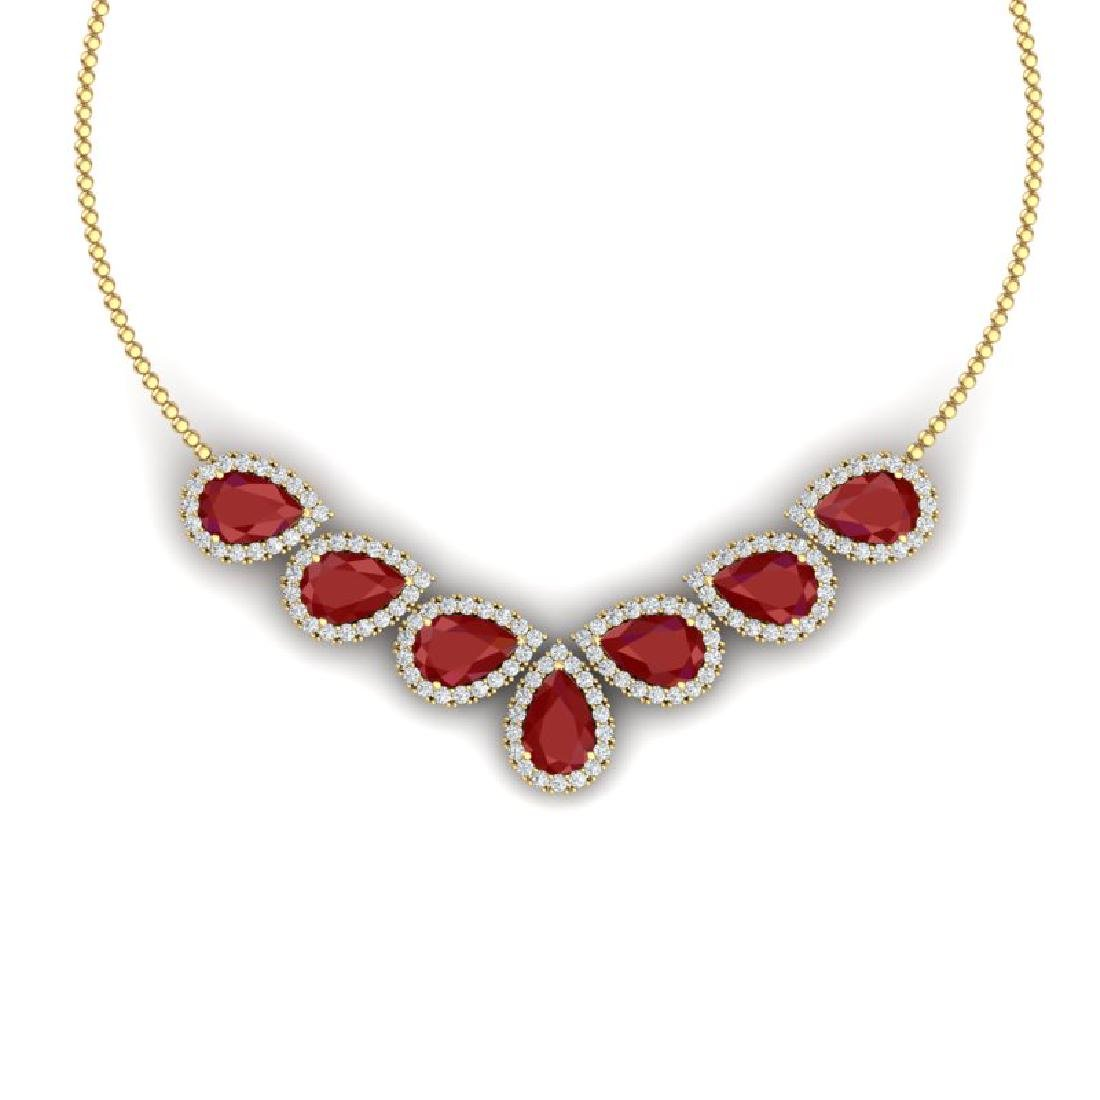 34.72 CTW Royalty Ruby & VS Diamond Necklace 18K Yellow